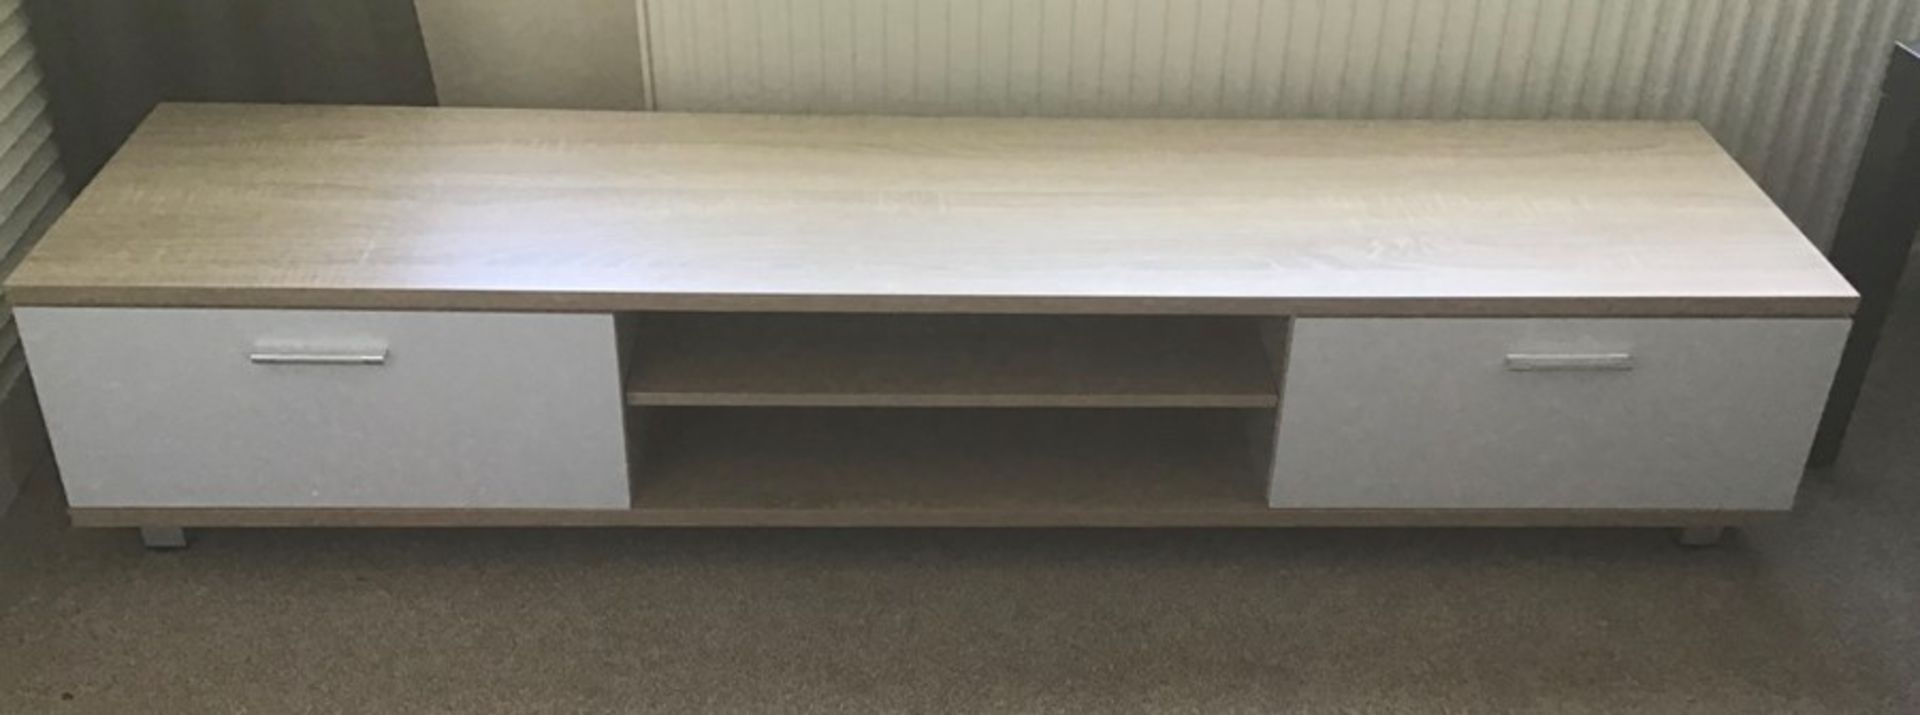 Oak and white 128cm TV stand, brand new, flat packed and boxed. RRP Circa £100.00 |3x Boxes